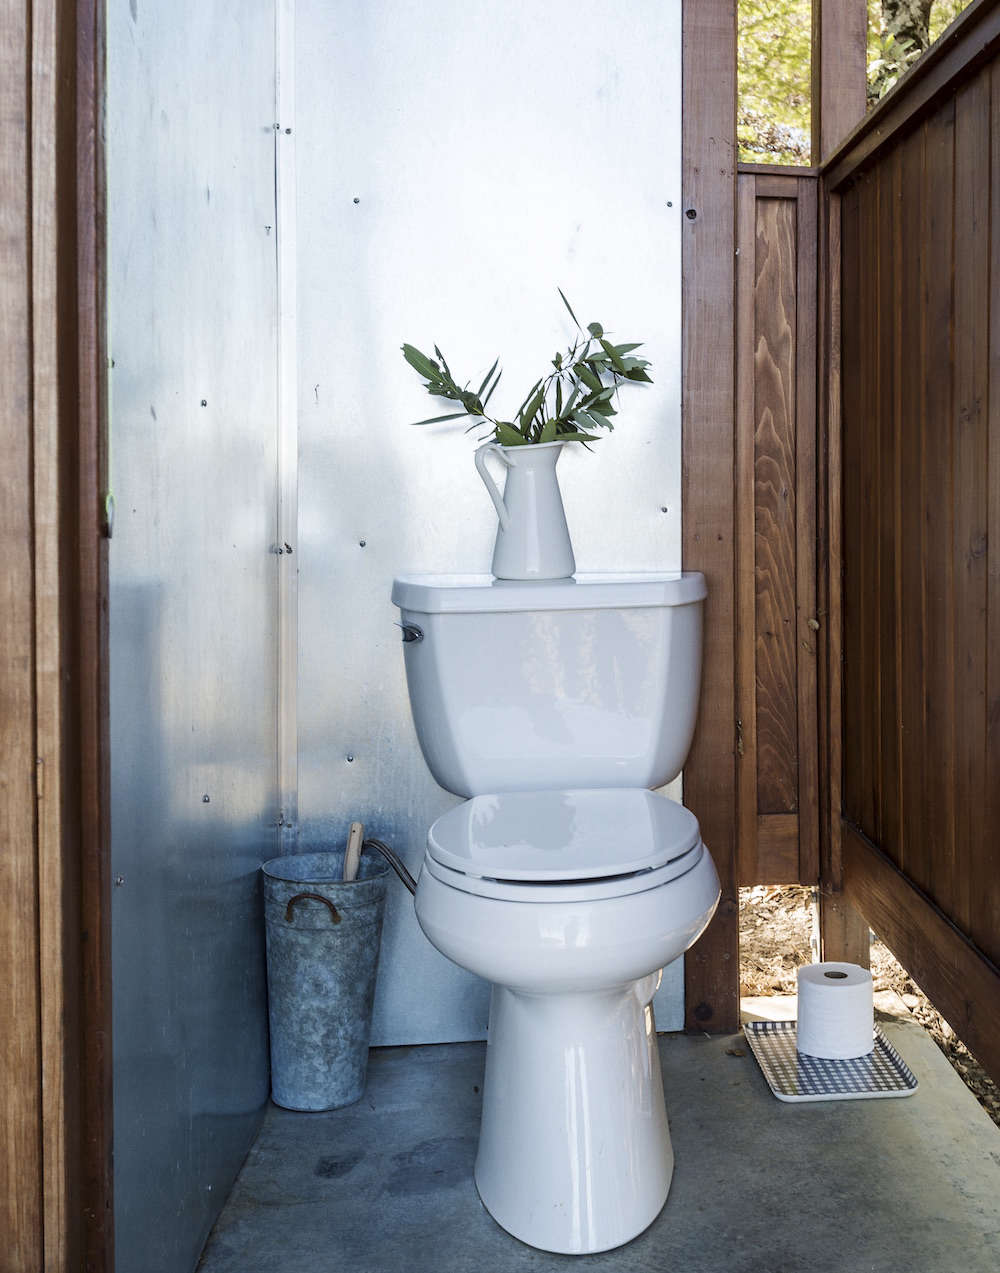 Outdoor Toilet with Stainless, Concrete, and Wood